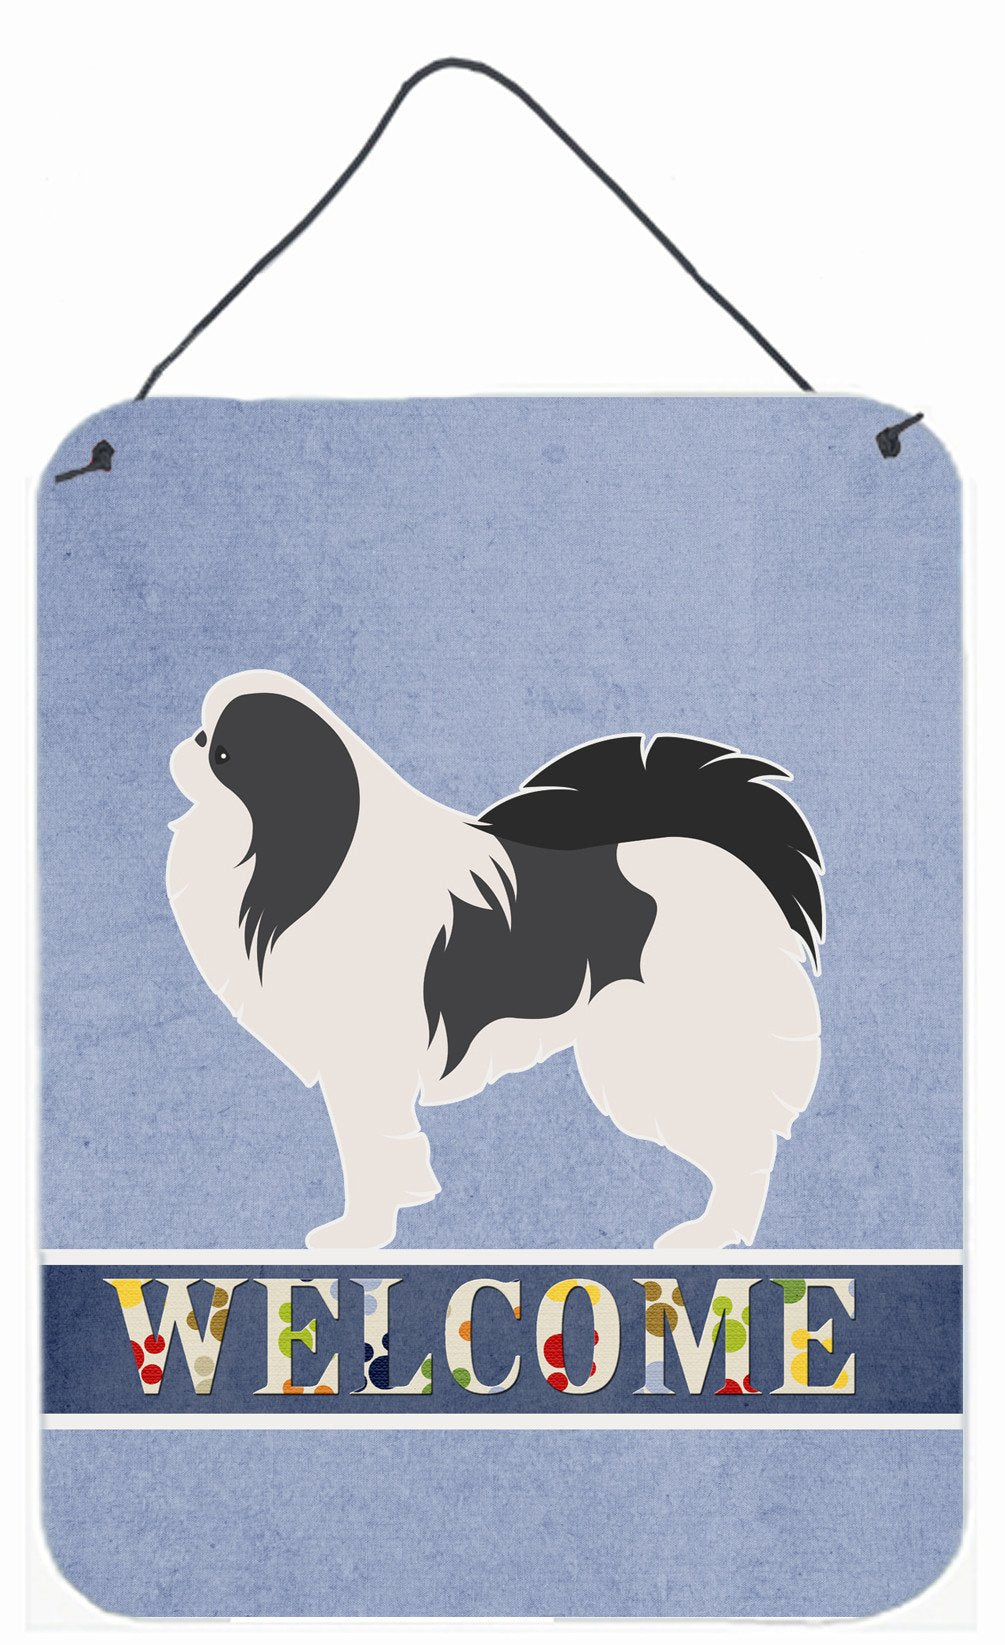 Japanese Chin Welcome Wall or Door Hanging Prints BB5541DS1216 by Caroline's Treasures